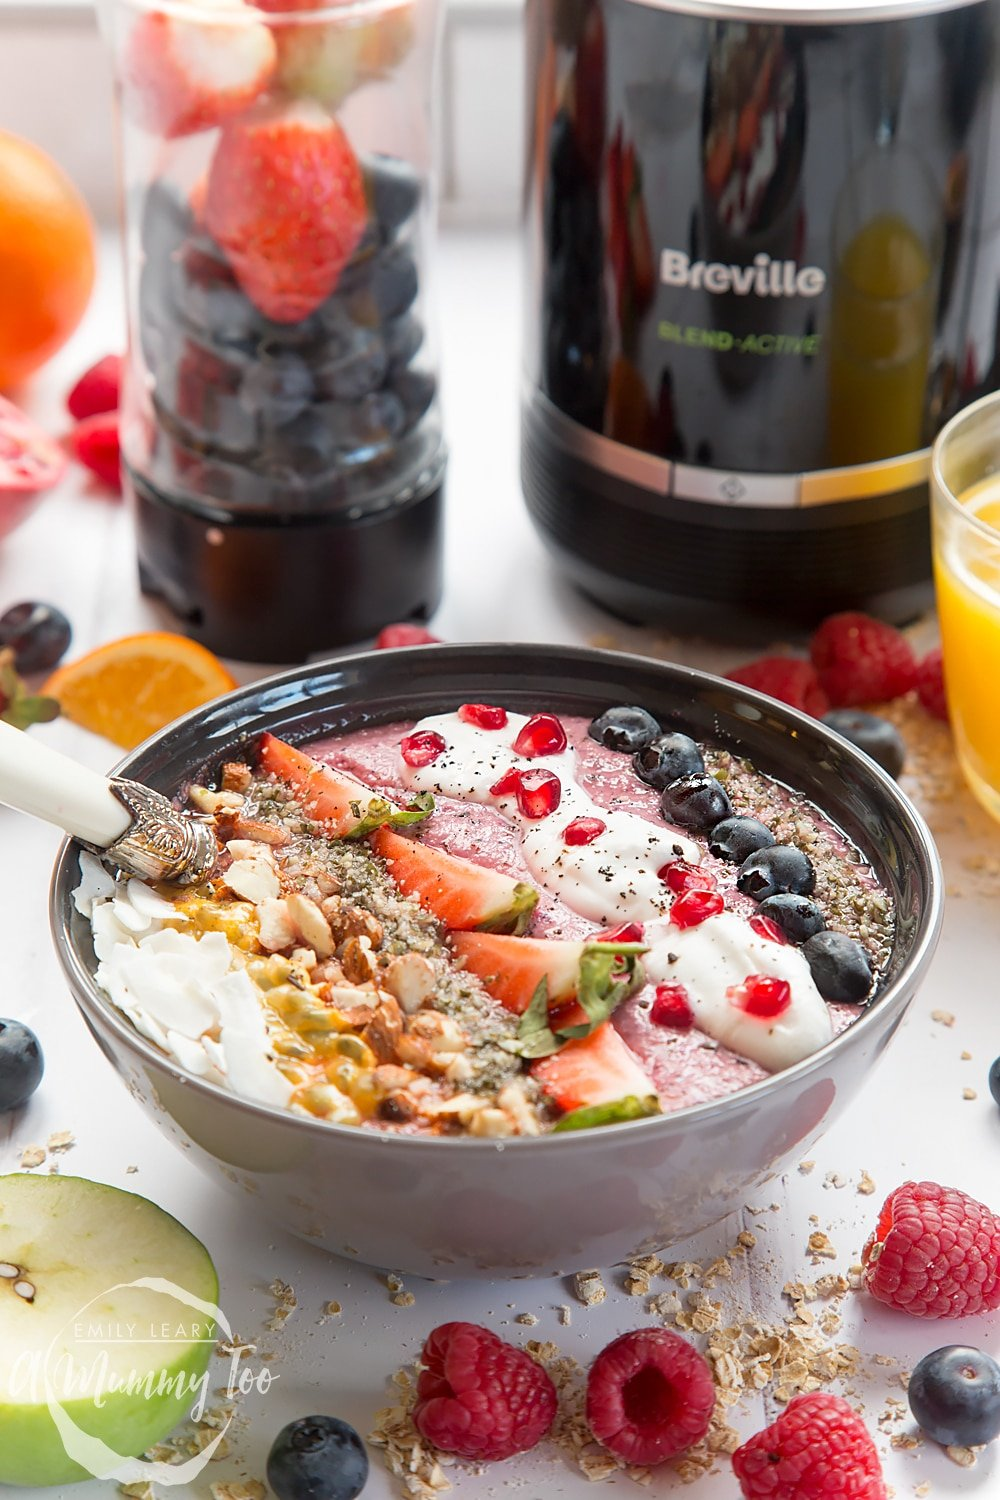 This vegan fruit and nut smoothie bowl is healthy, filling and easy to make with the Breville Blend Active Pro Personal Blender